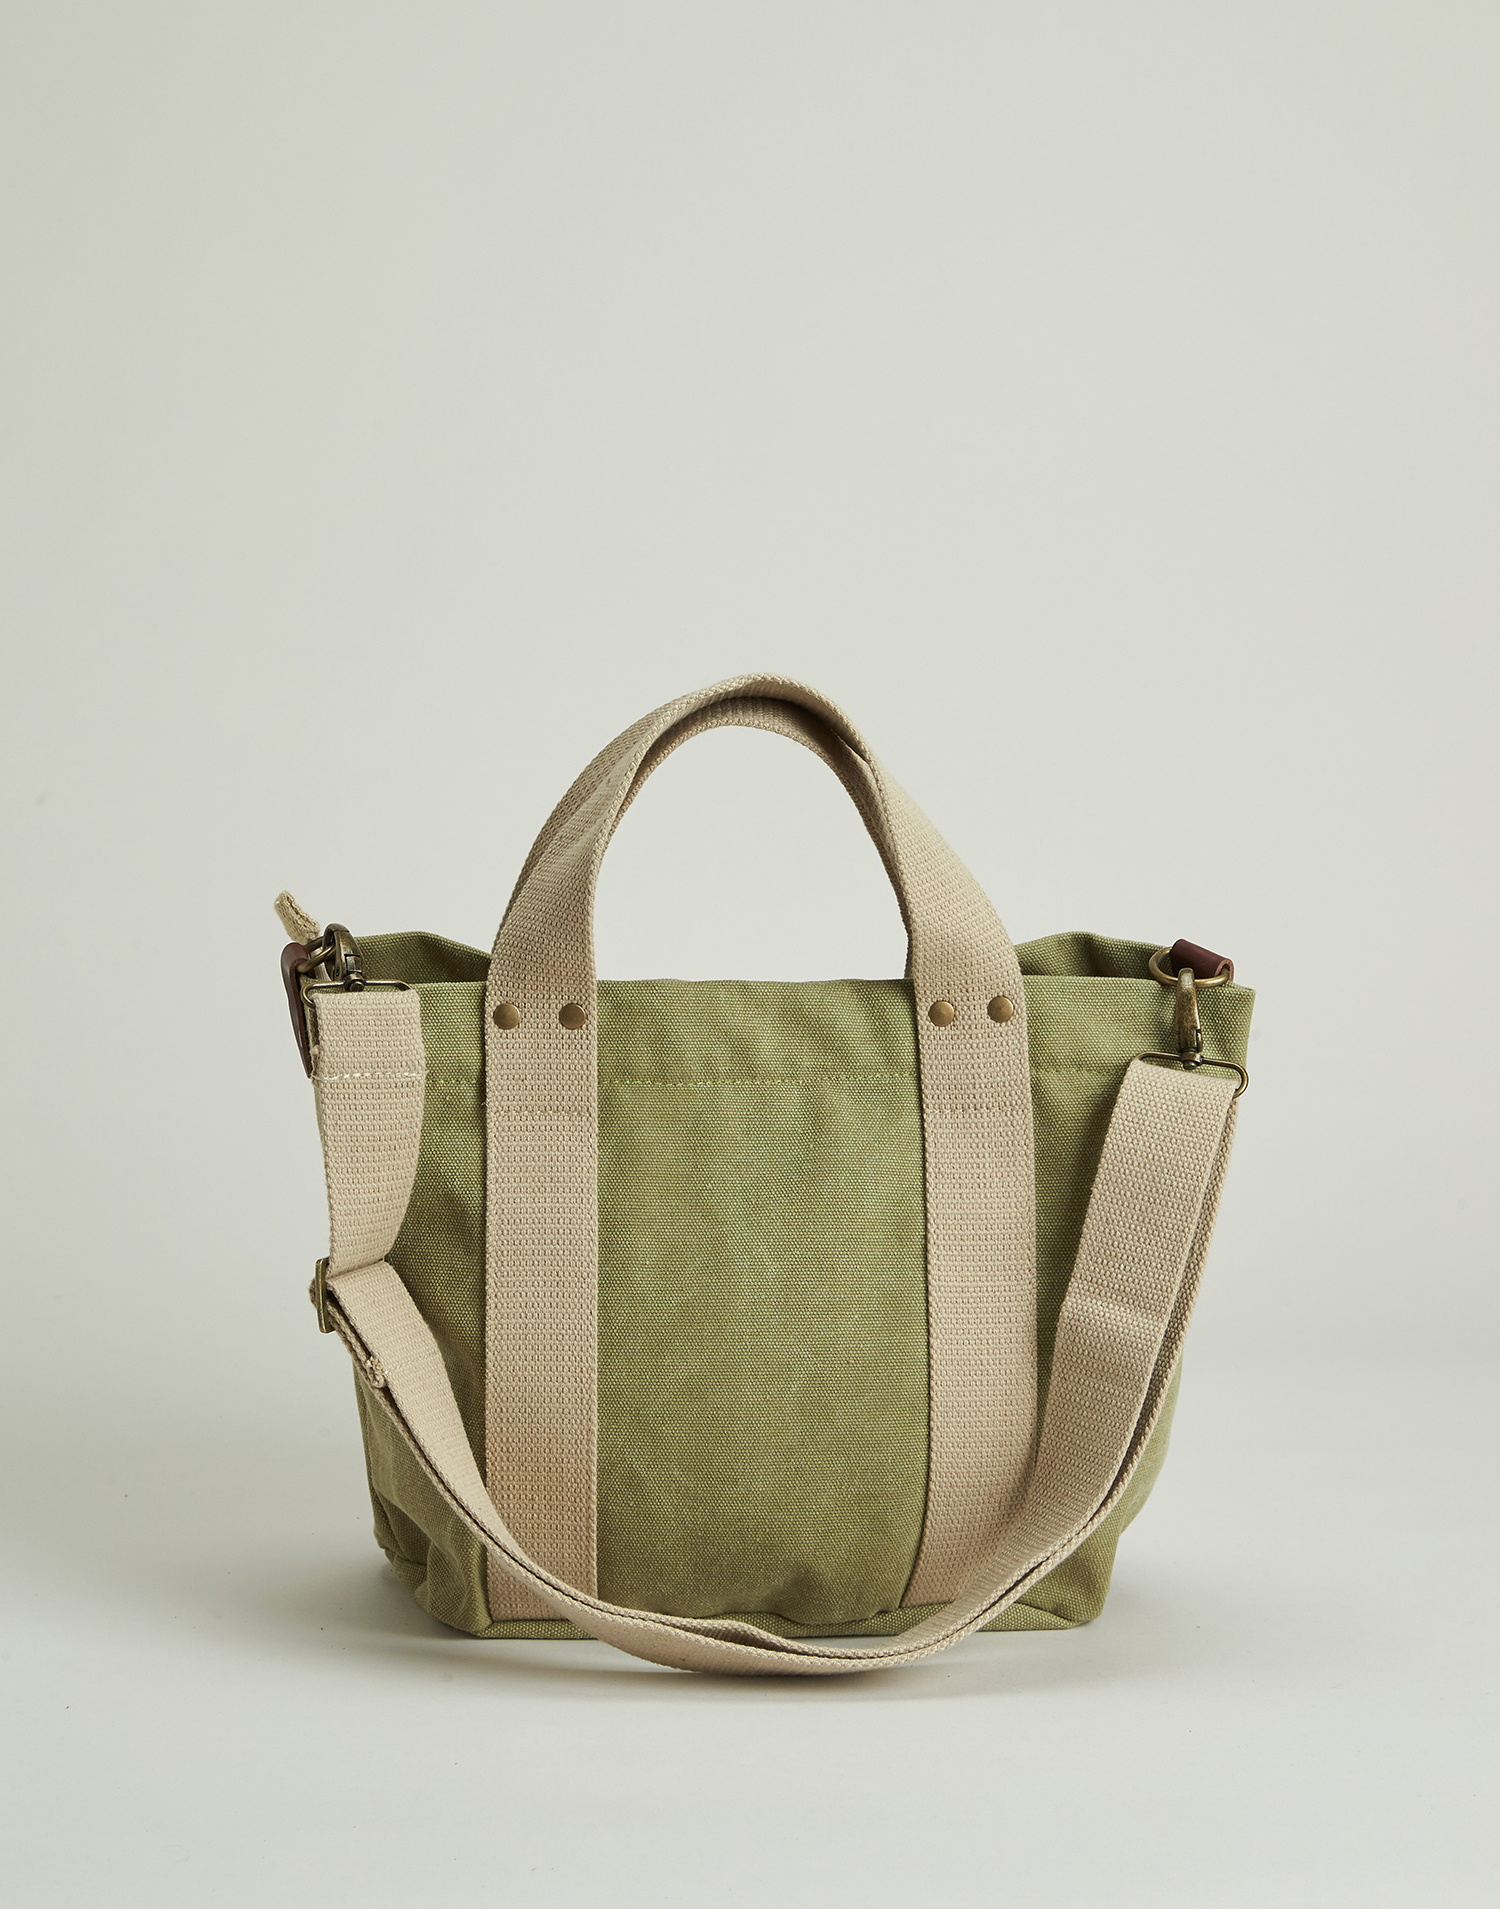 Basic bag with handles